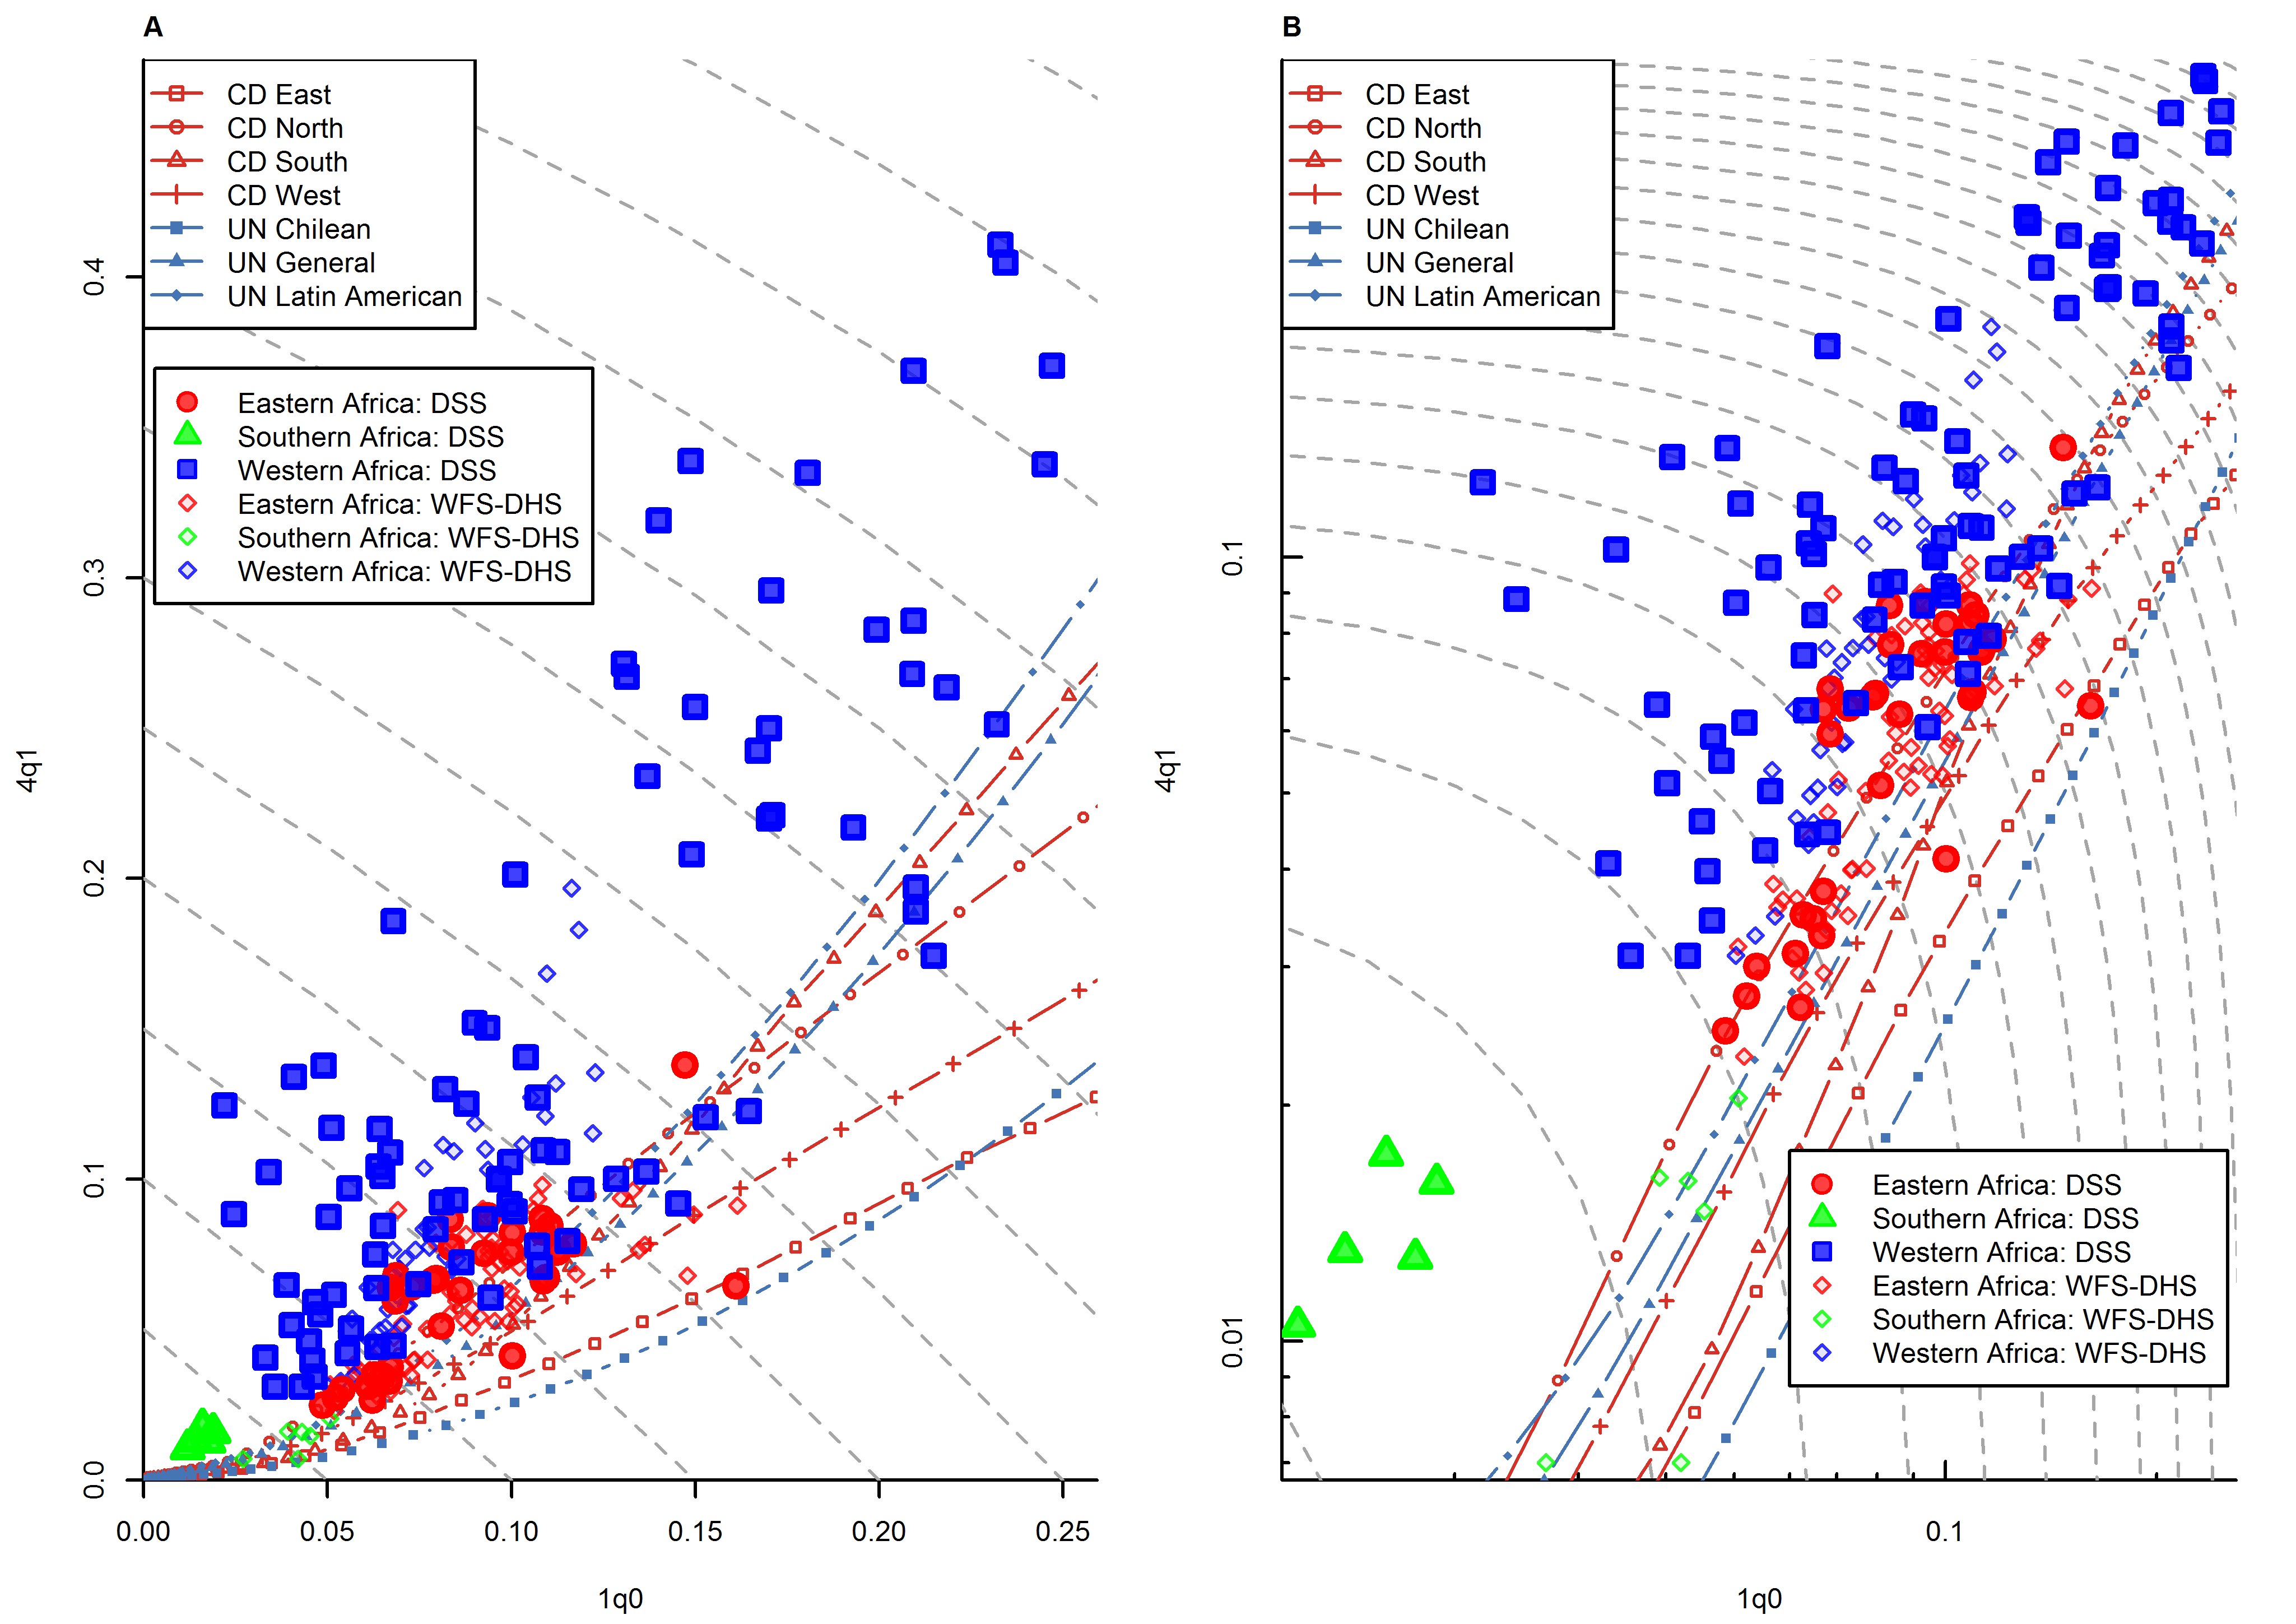 Relationship between <sub>1</sub><i>q</i><sub>0</sub> and <sub>4</sub><i>q</i><sub>1</sub> in DSS data versus WFS/DHS data for sub-Saharan African countries where DSS sites are located.